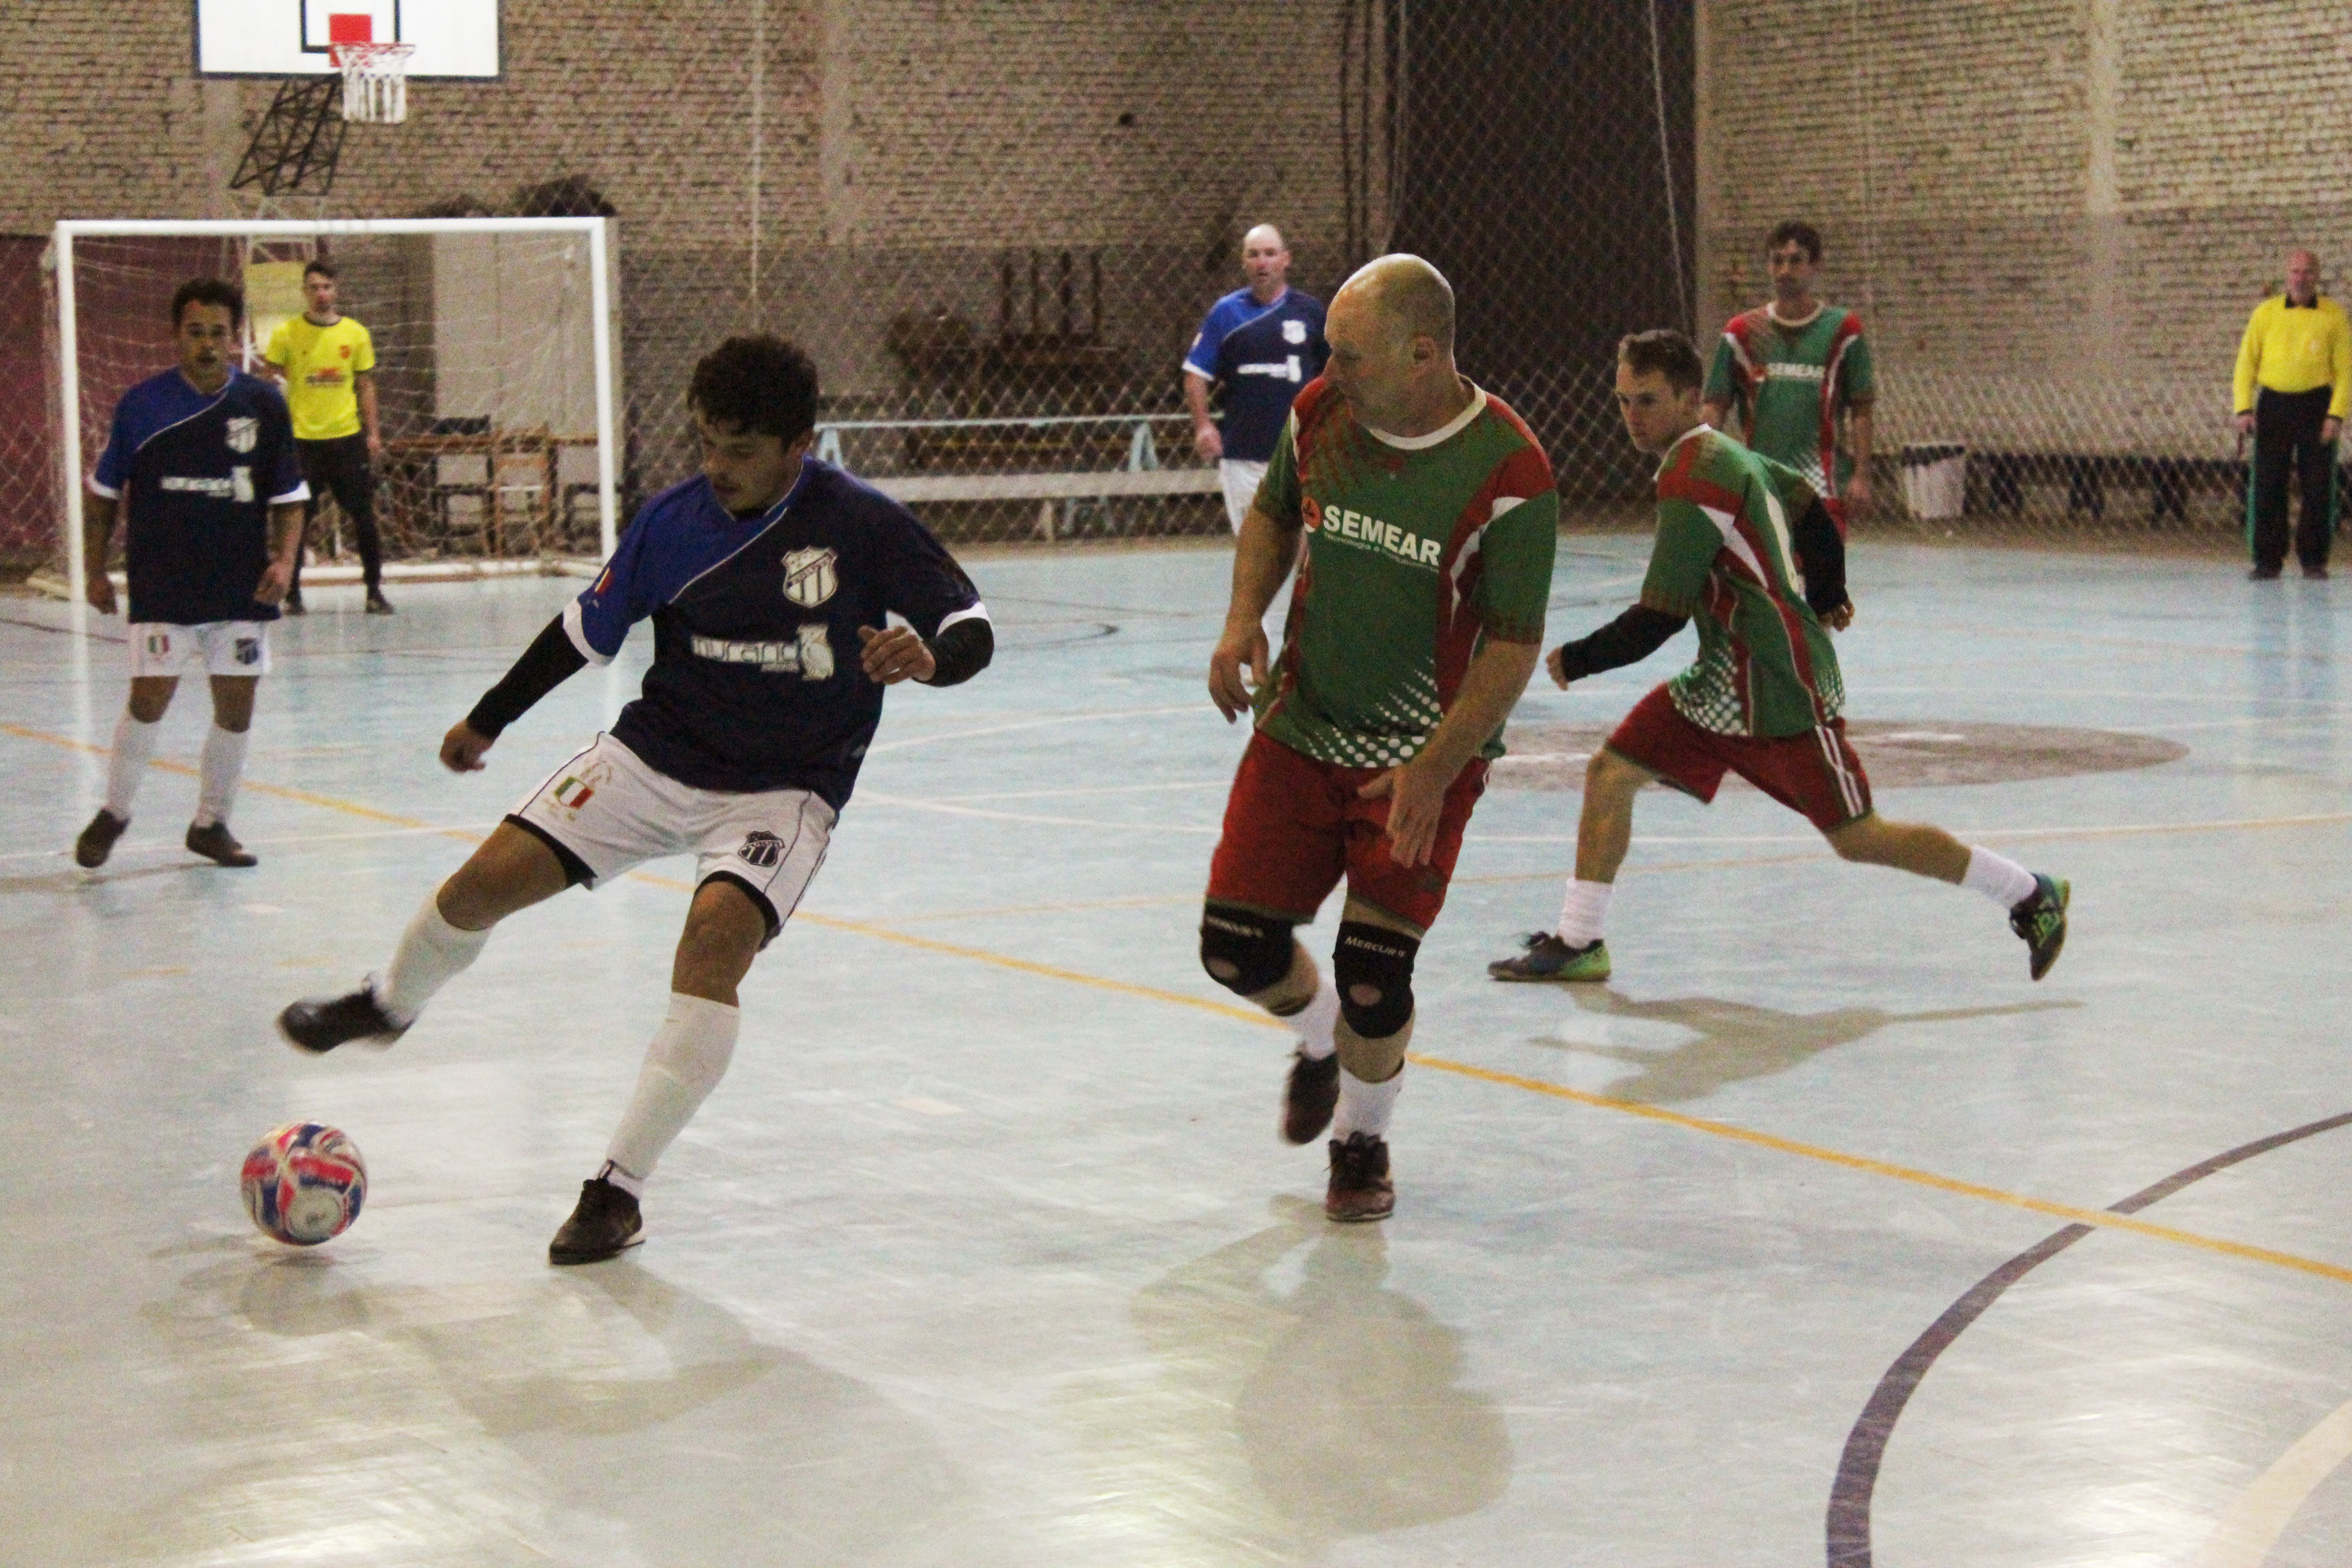 Semifinal do Campeonato de Futsal do Interior é amanhã (16)